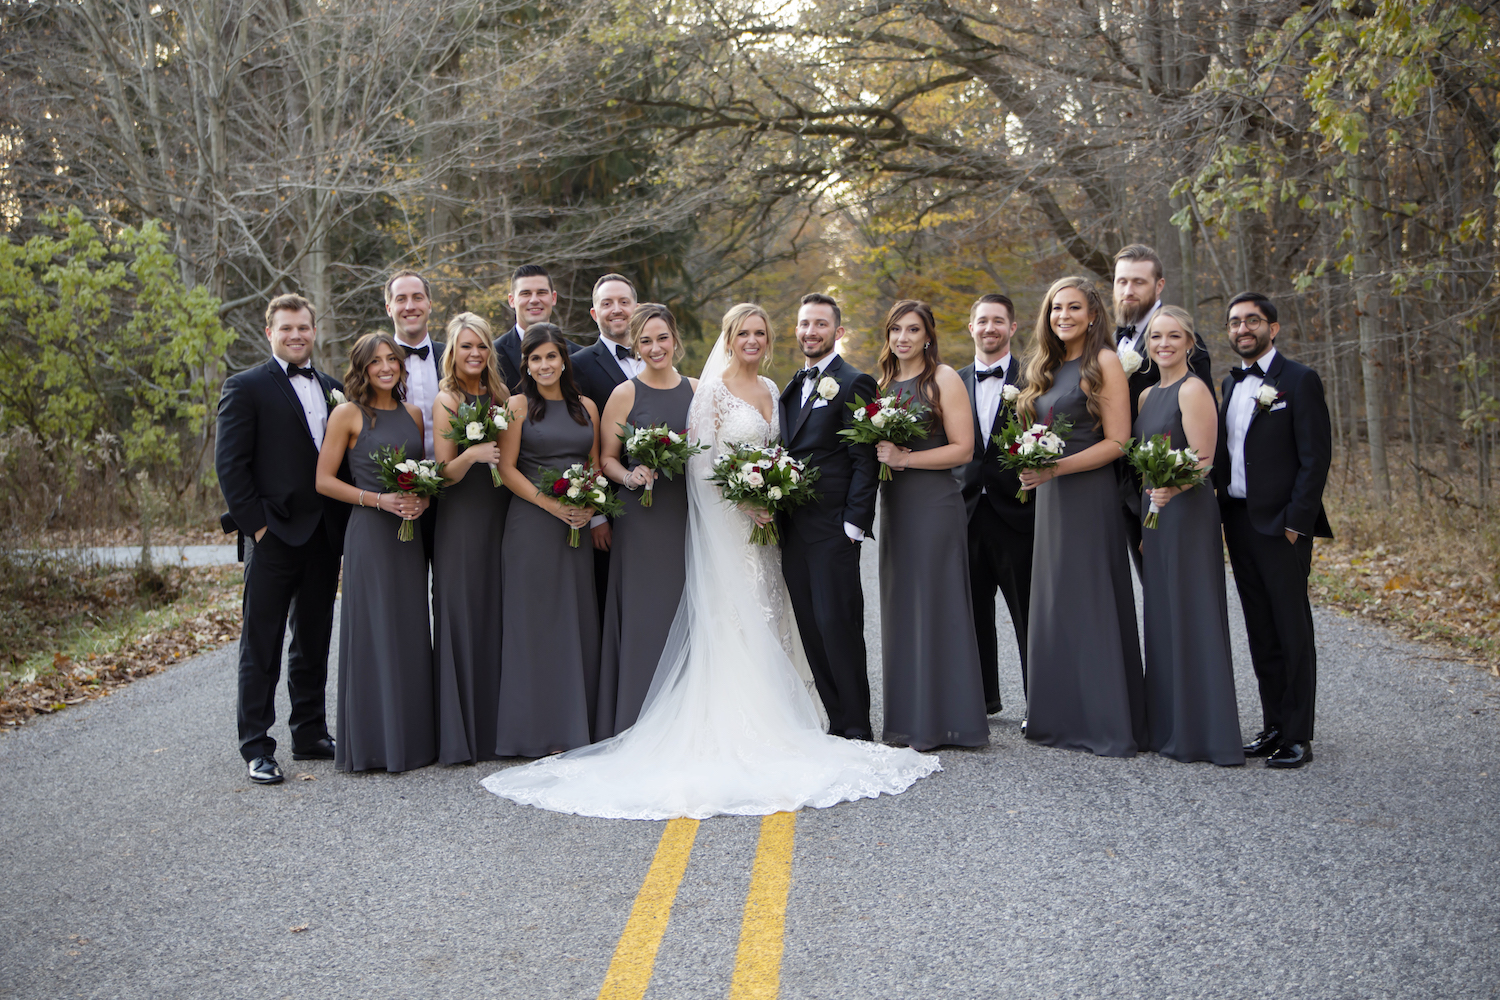 Bridal party standing on road for rustic Michigan wedding